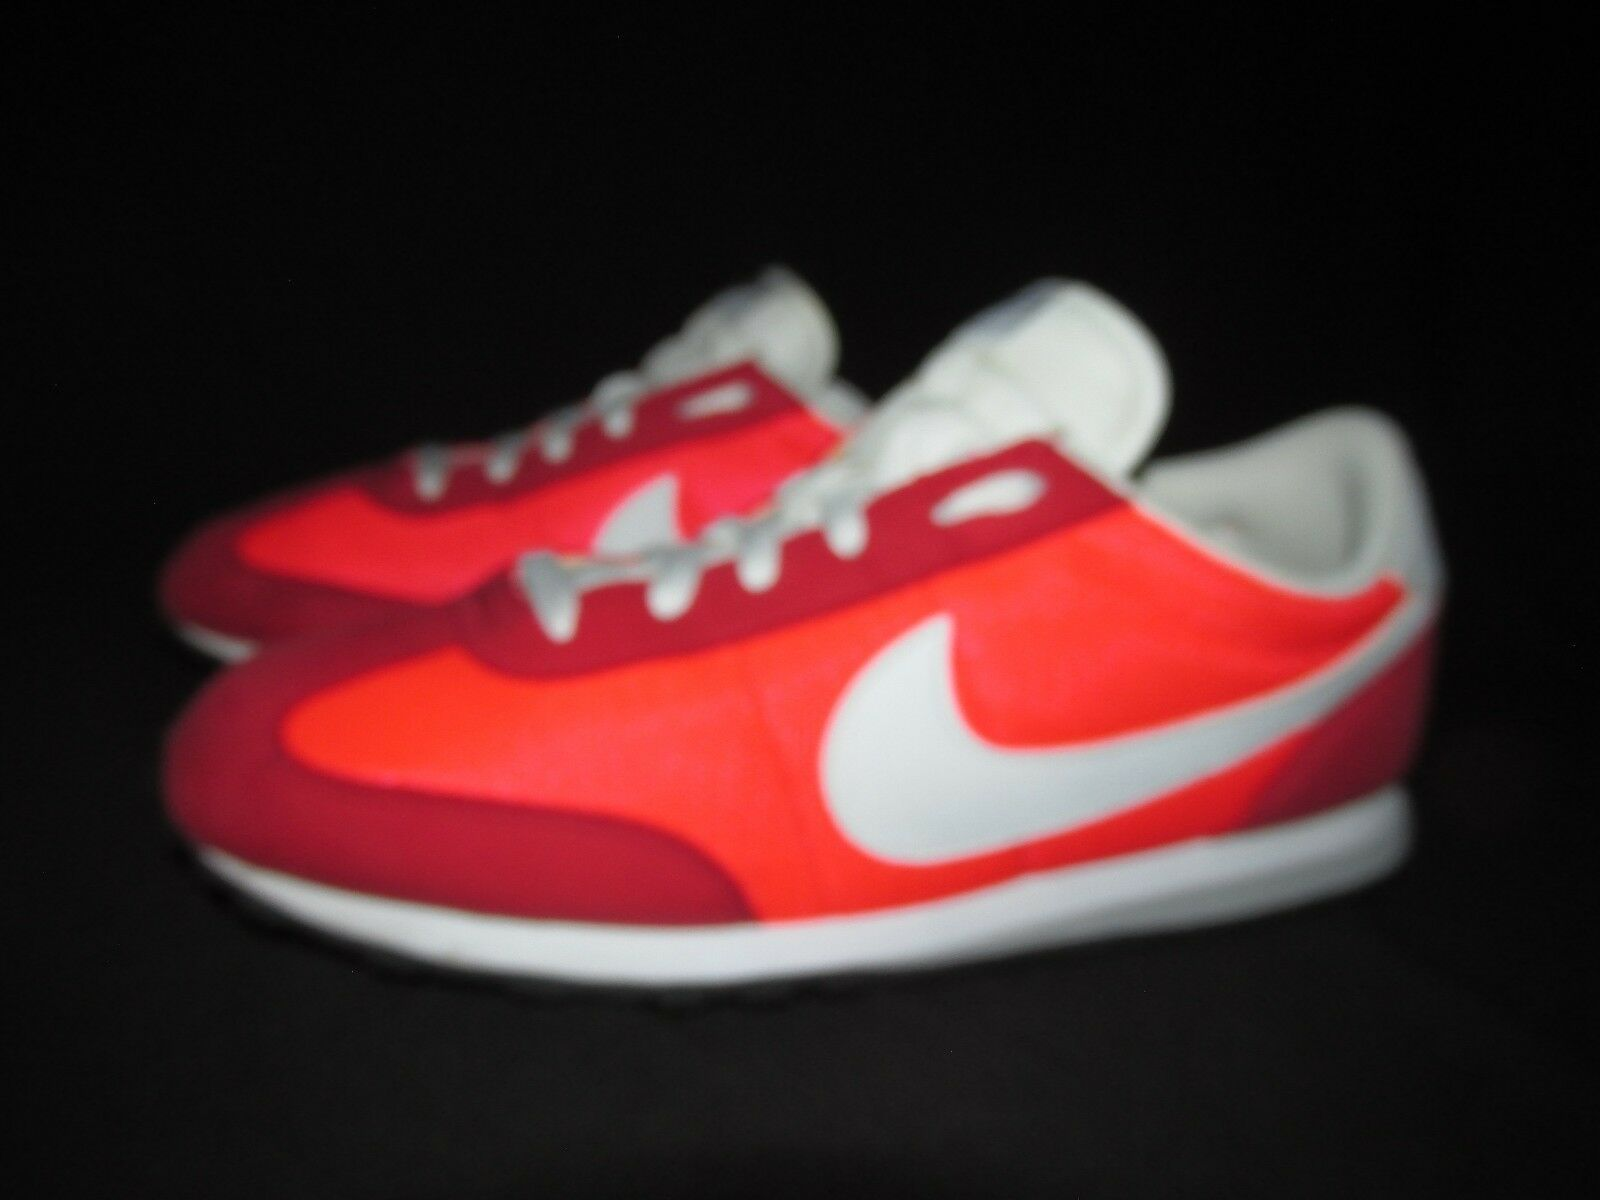 Special limited time Nike 303992 Mach Runner Red Orange White Low Trainer Shoes Men's US 9.5M EU43